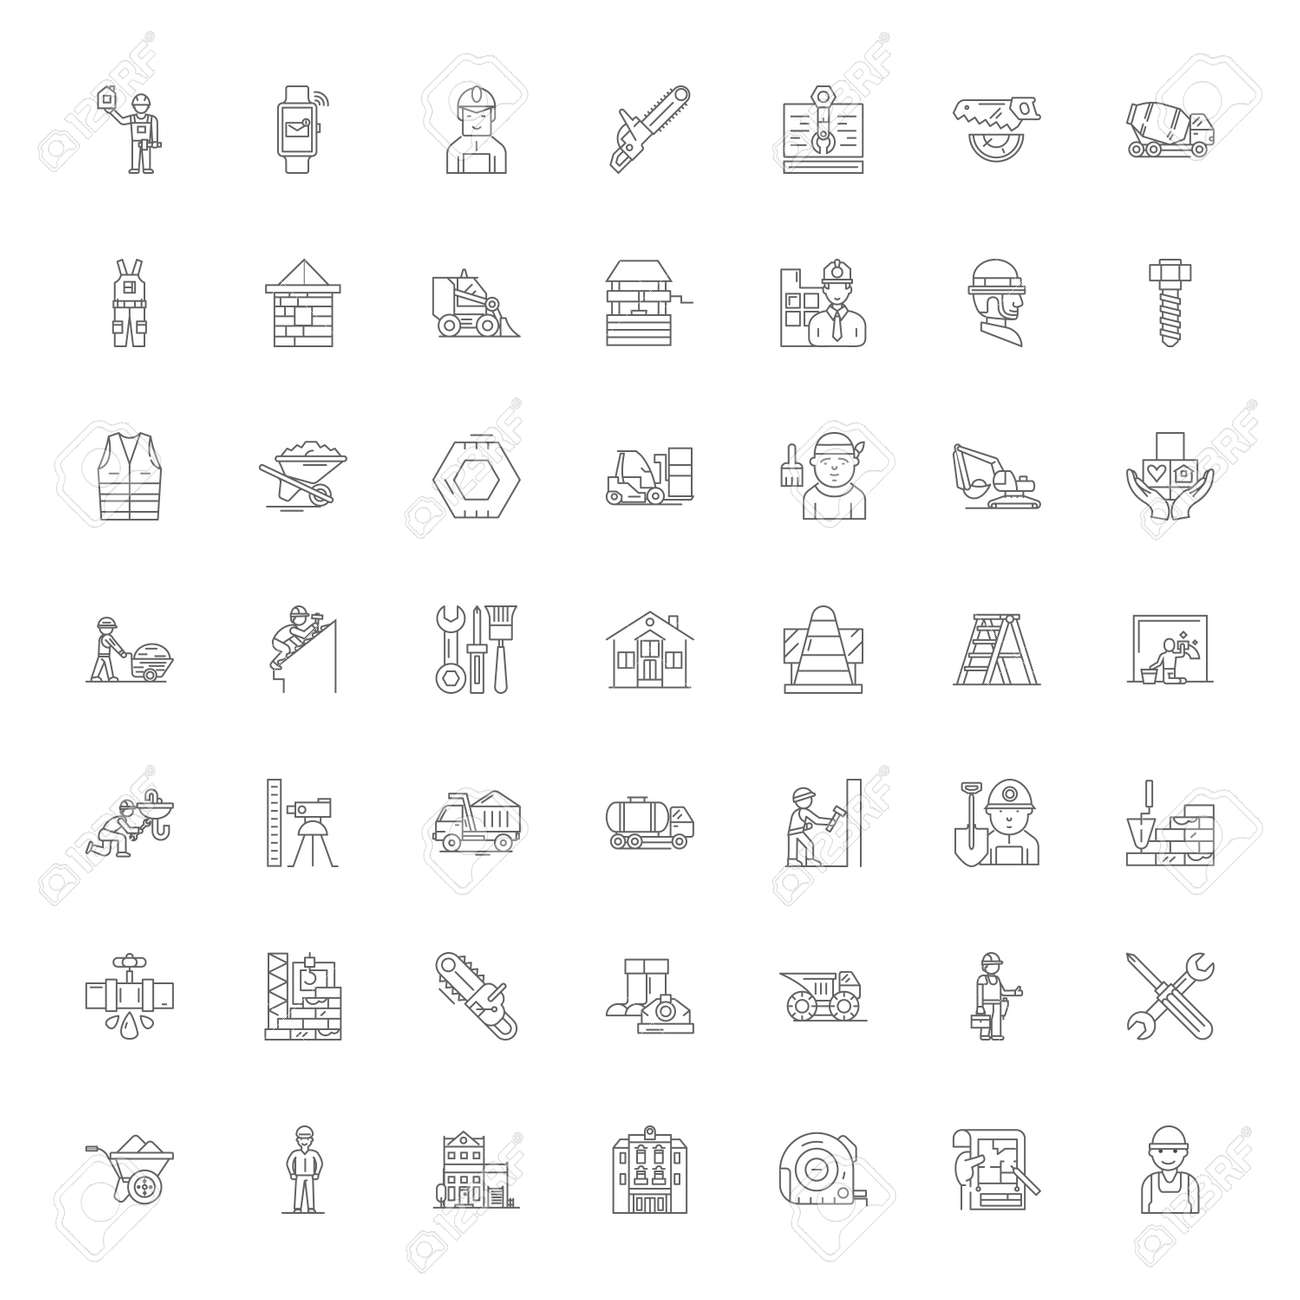 Contractor line icons, signs, symbols vector, linear illustration set - 134820886